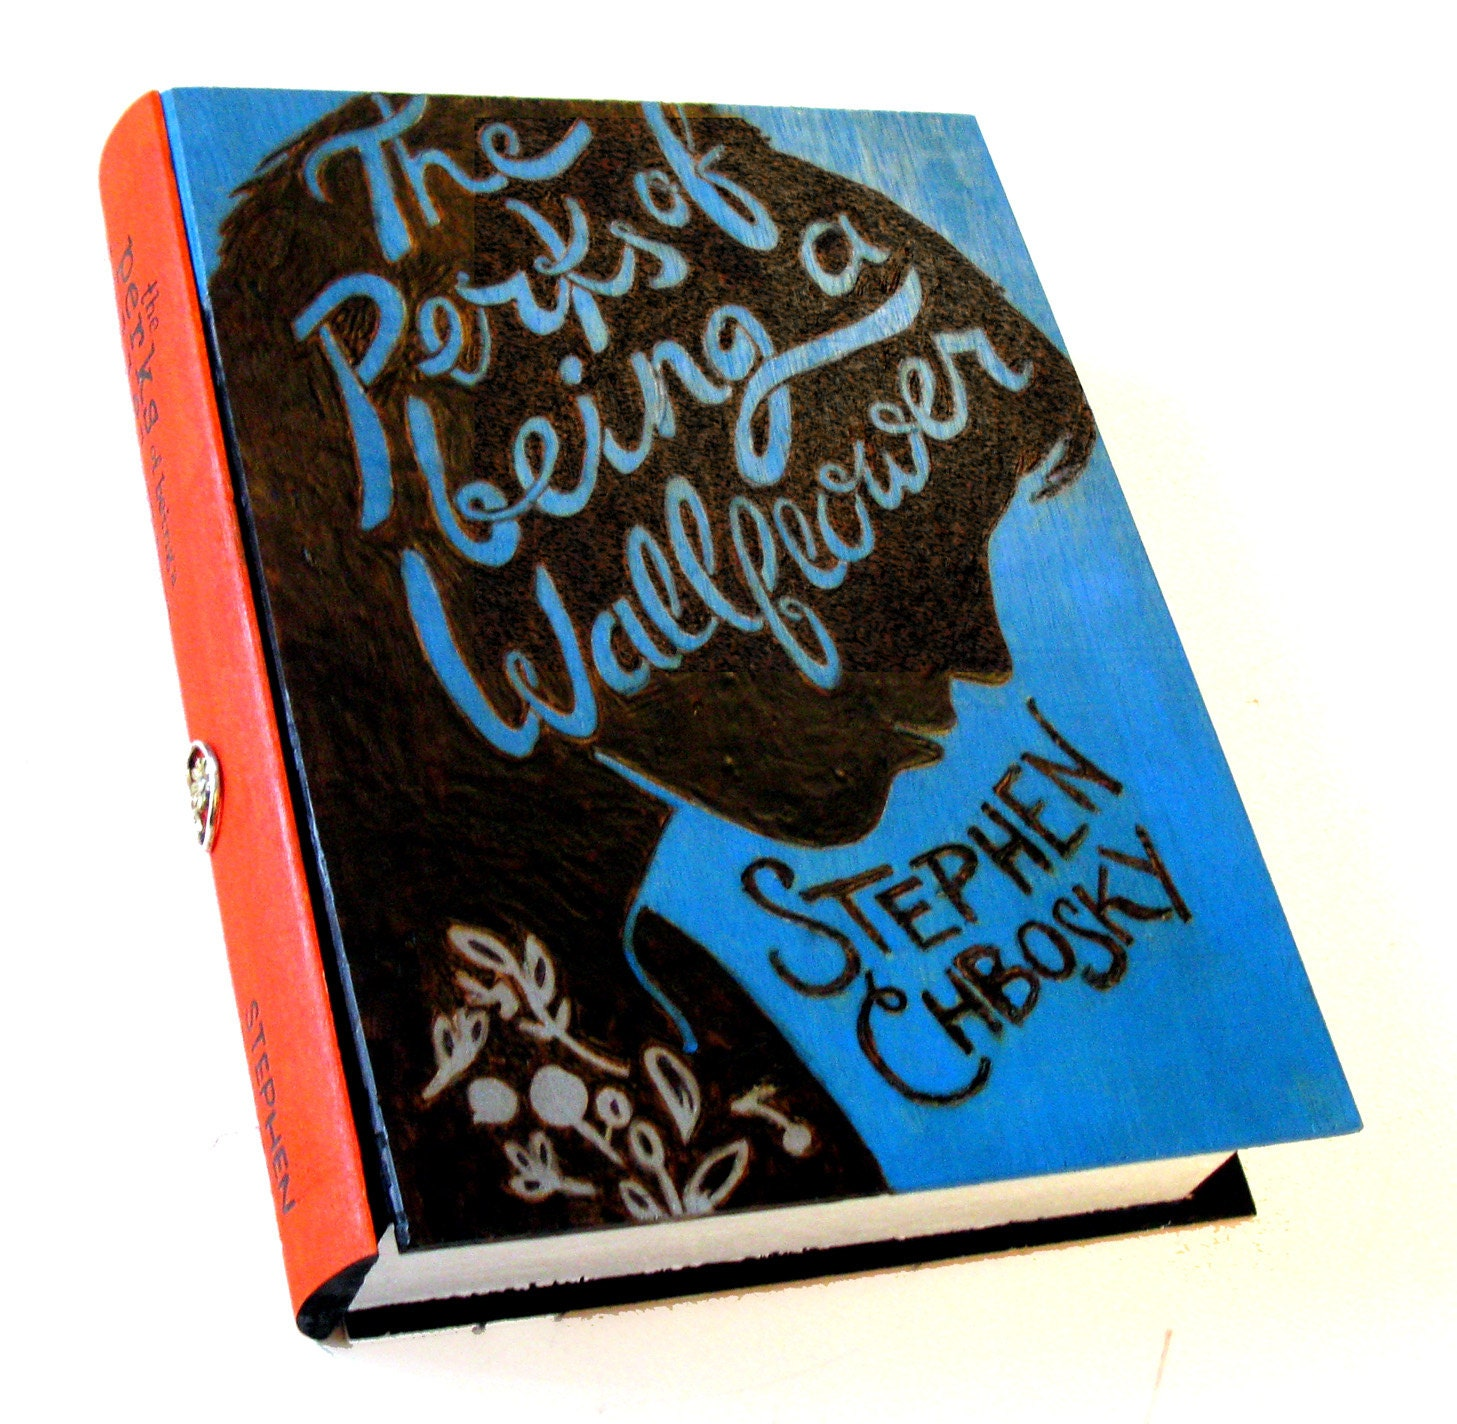 perks of being a wallflower book Find great deals on ebay for perks of being a wallflower book shop with confidence.